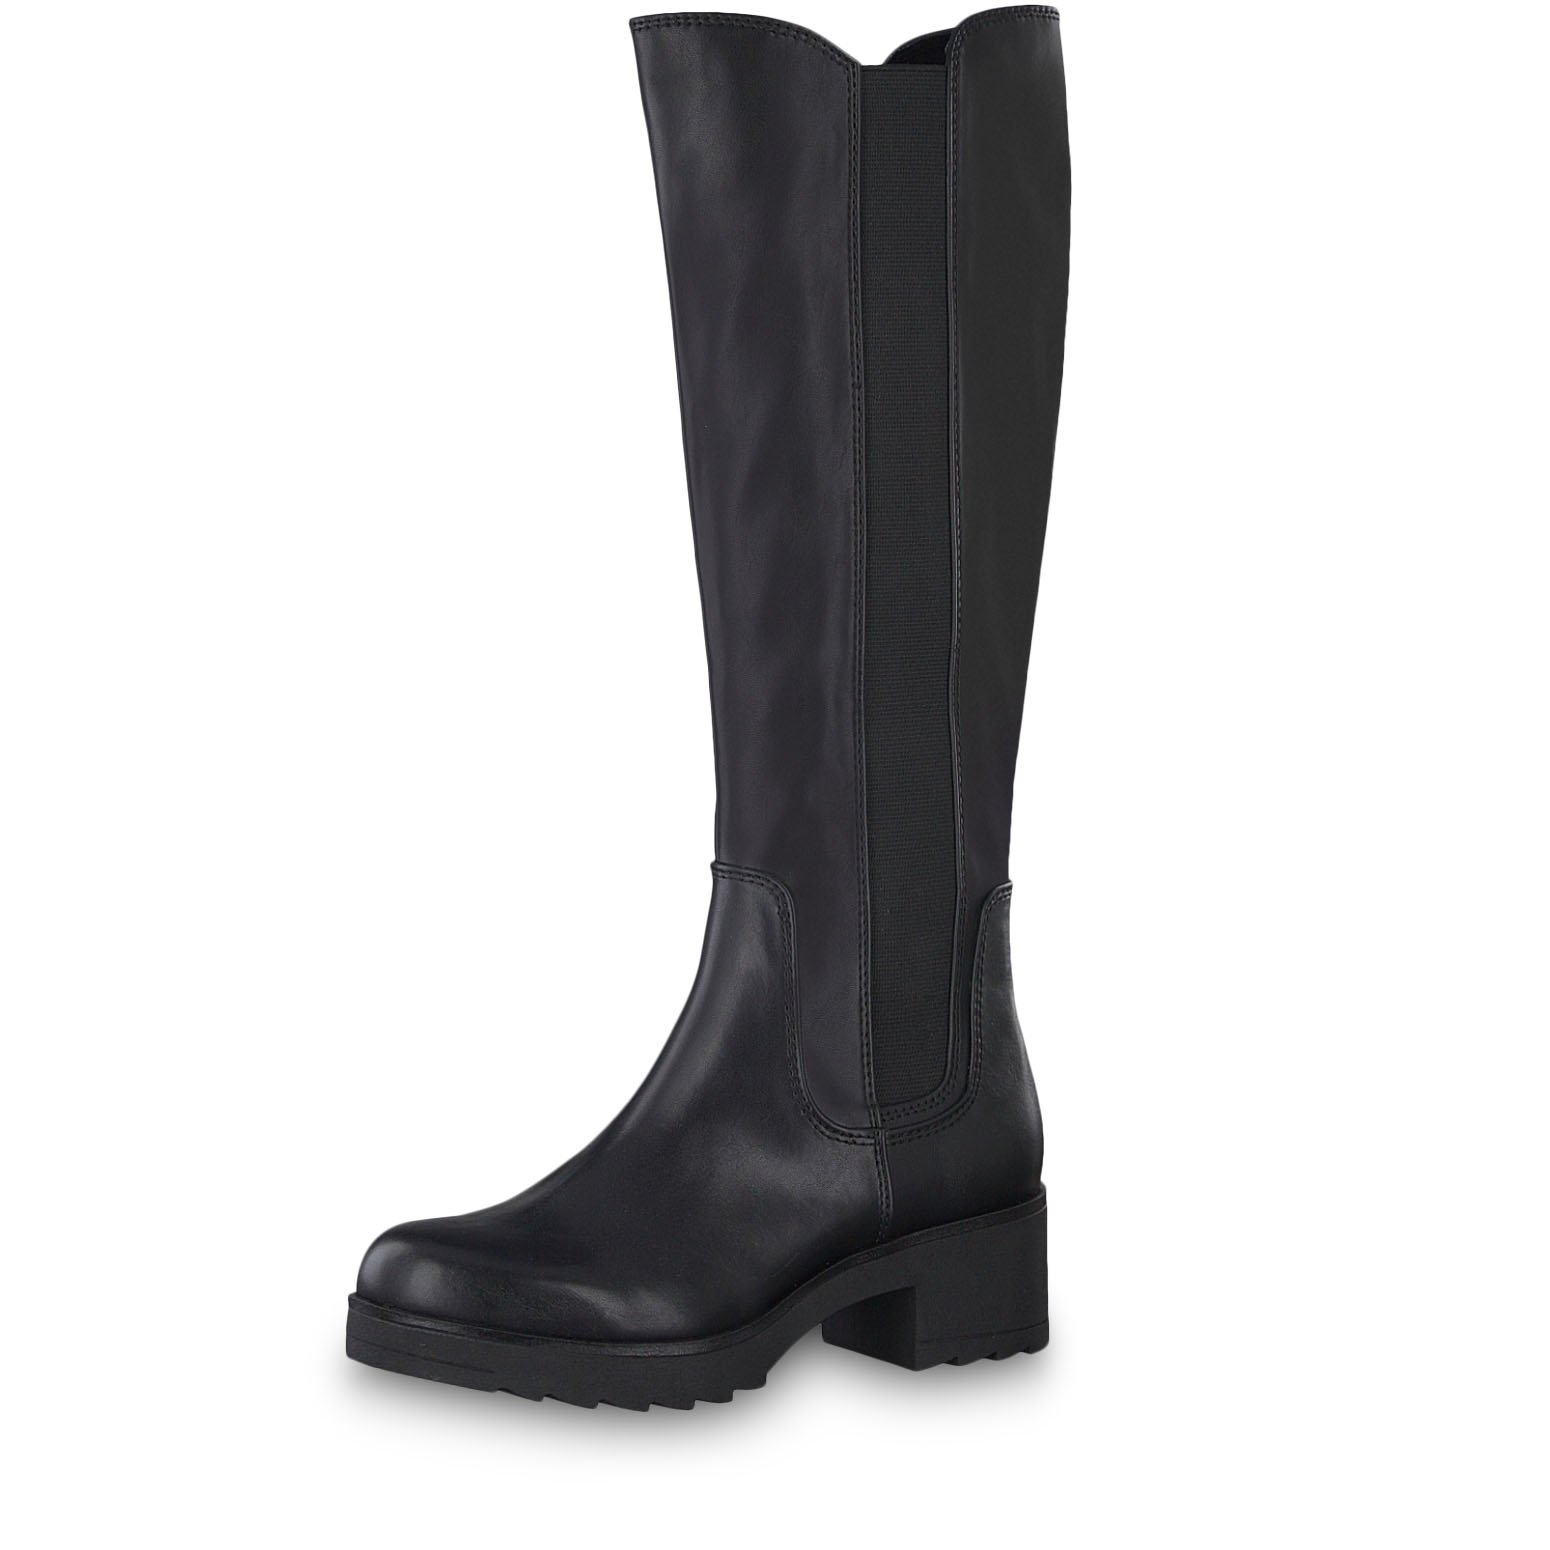 Boots - black, BLACK ANTIC, hi-res